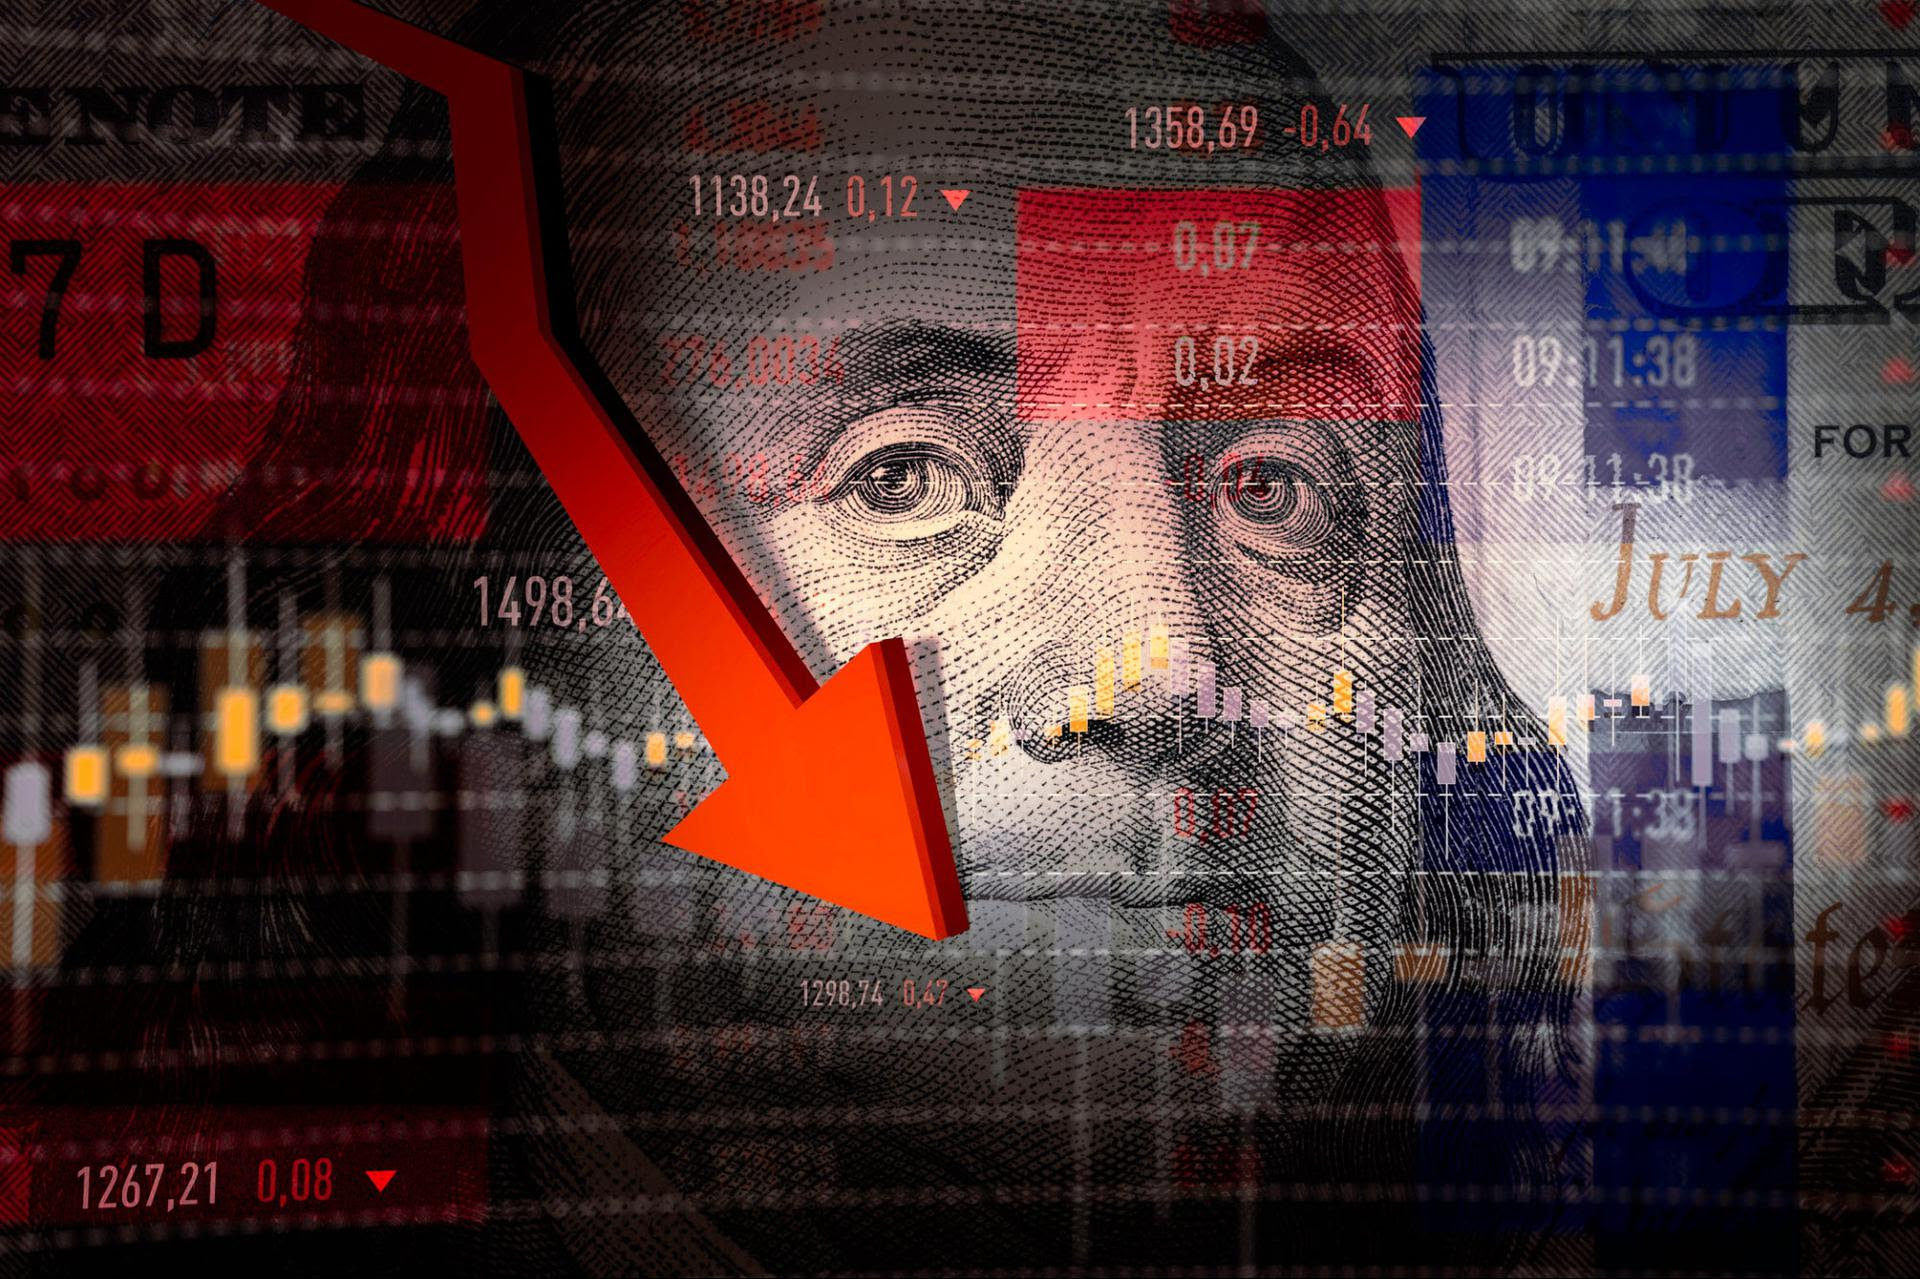 Negative stock charts and graphs overlaid on currency